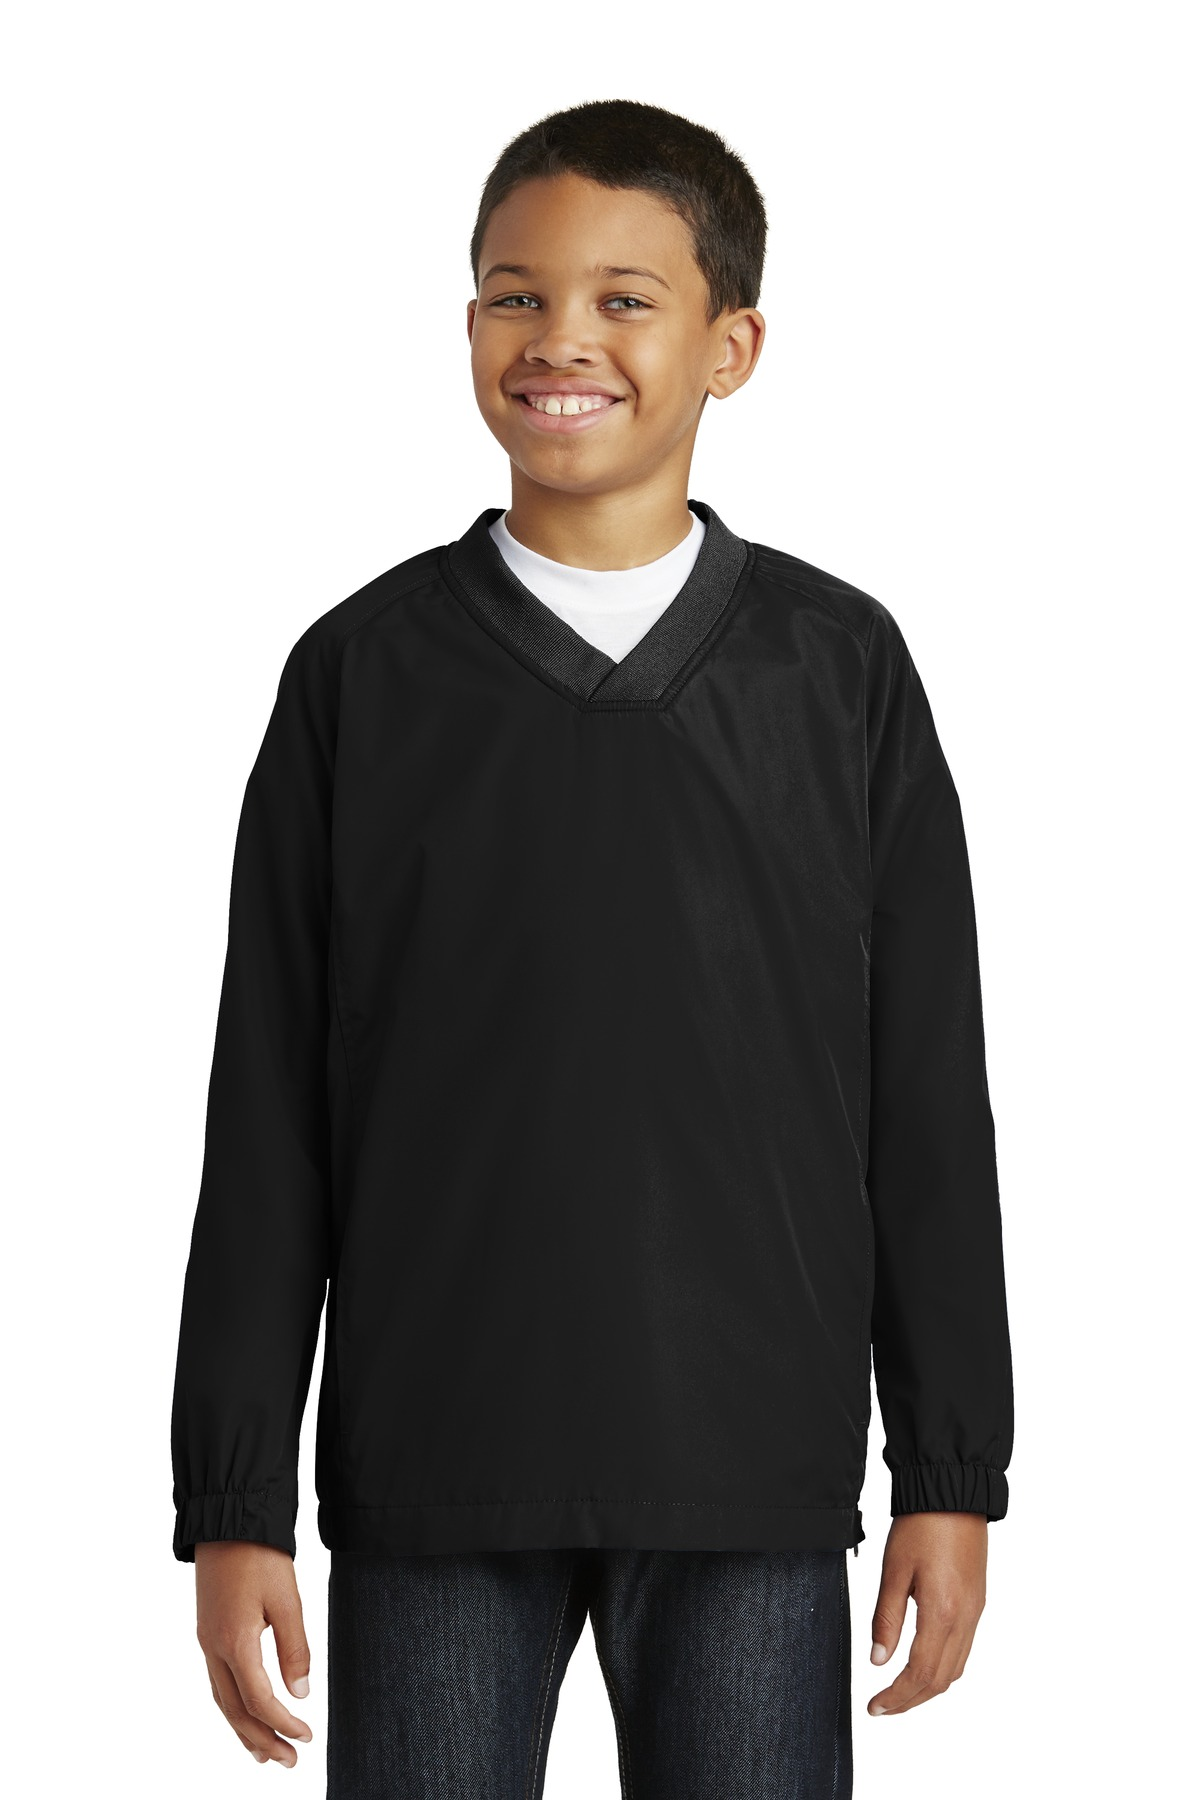 Sport-Tek ®  Youth V-Neck Raglan Wind Shirt. YST72 - Black